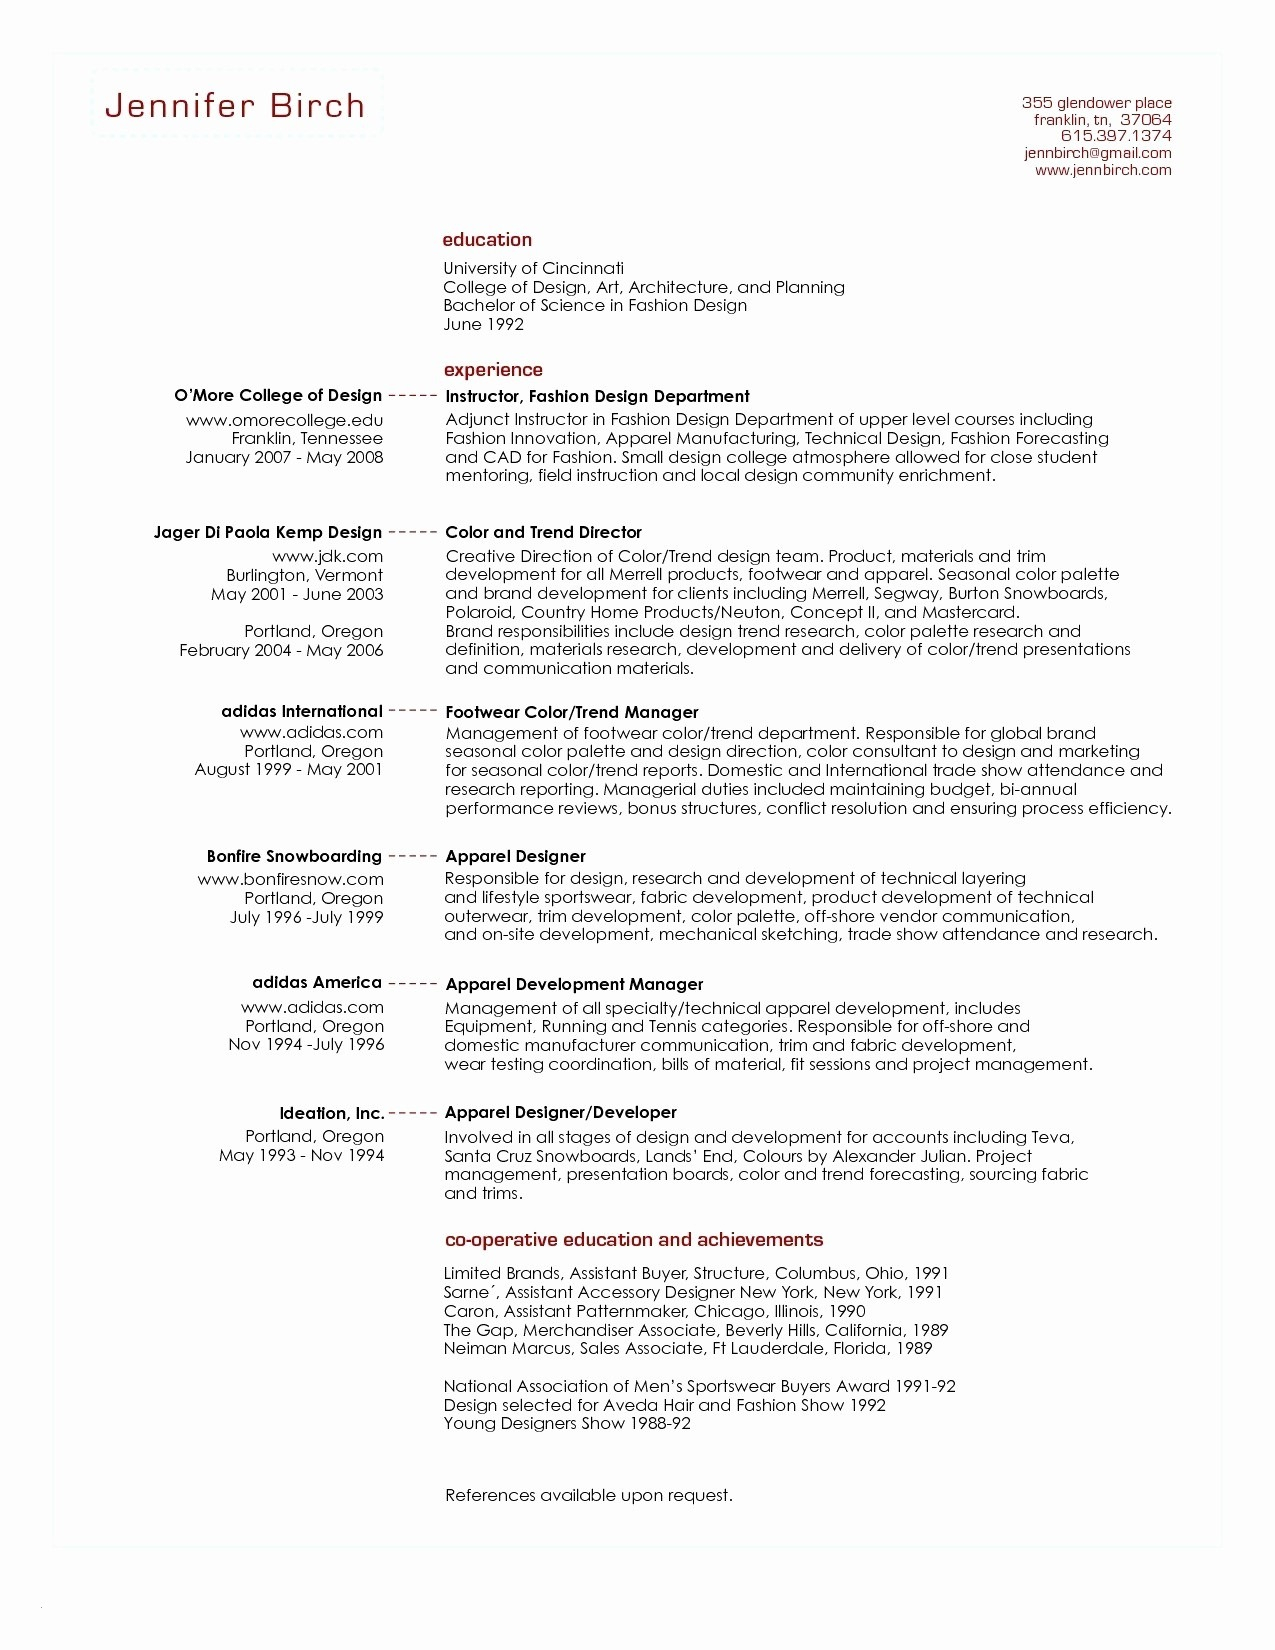 resume template for senior management example-Personal assistant Resume Sample New Elegant Resume Cv Executive Sample Luxury Resume Examples 0d Cv 2-i